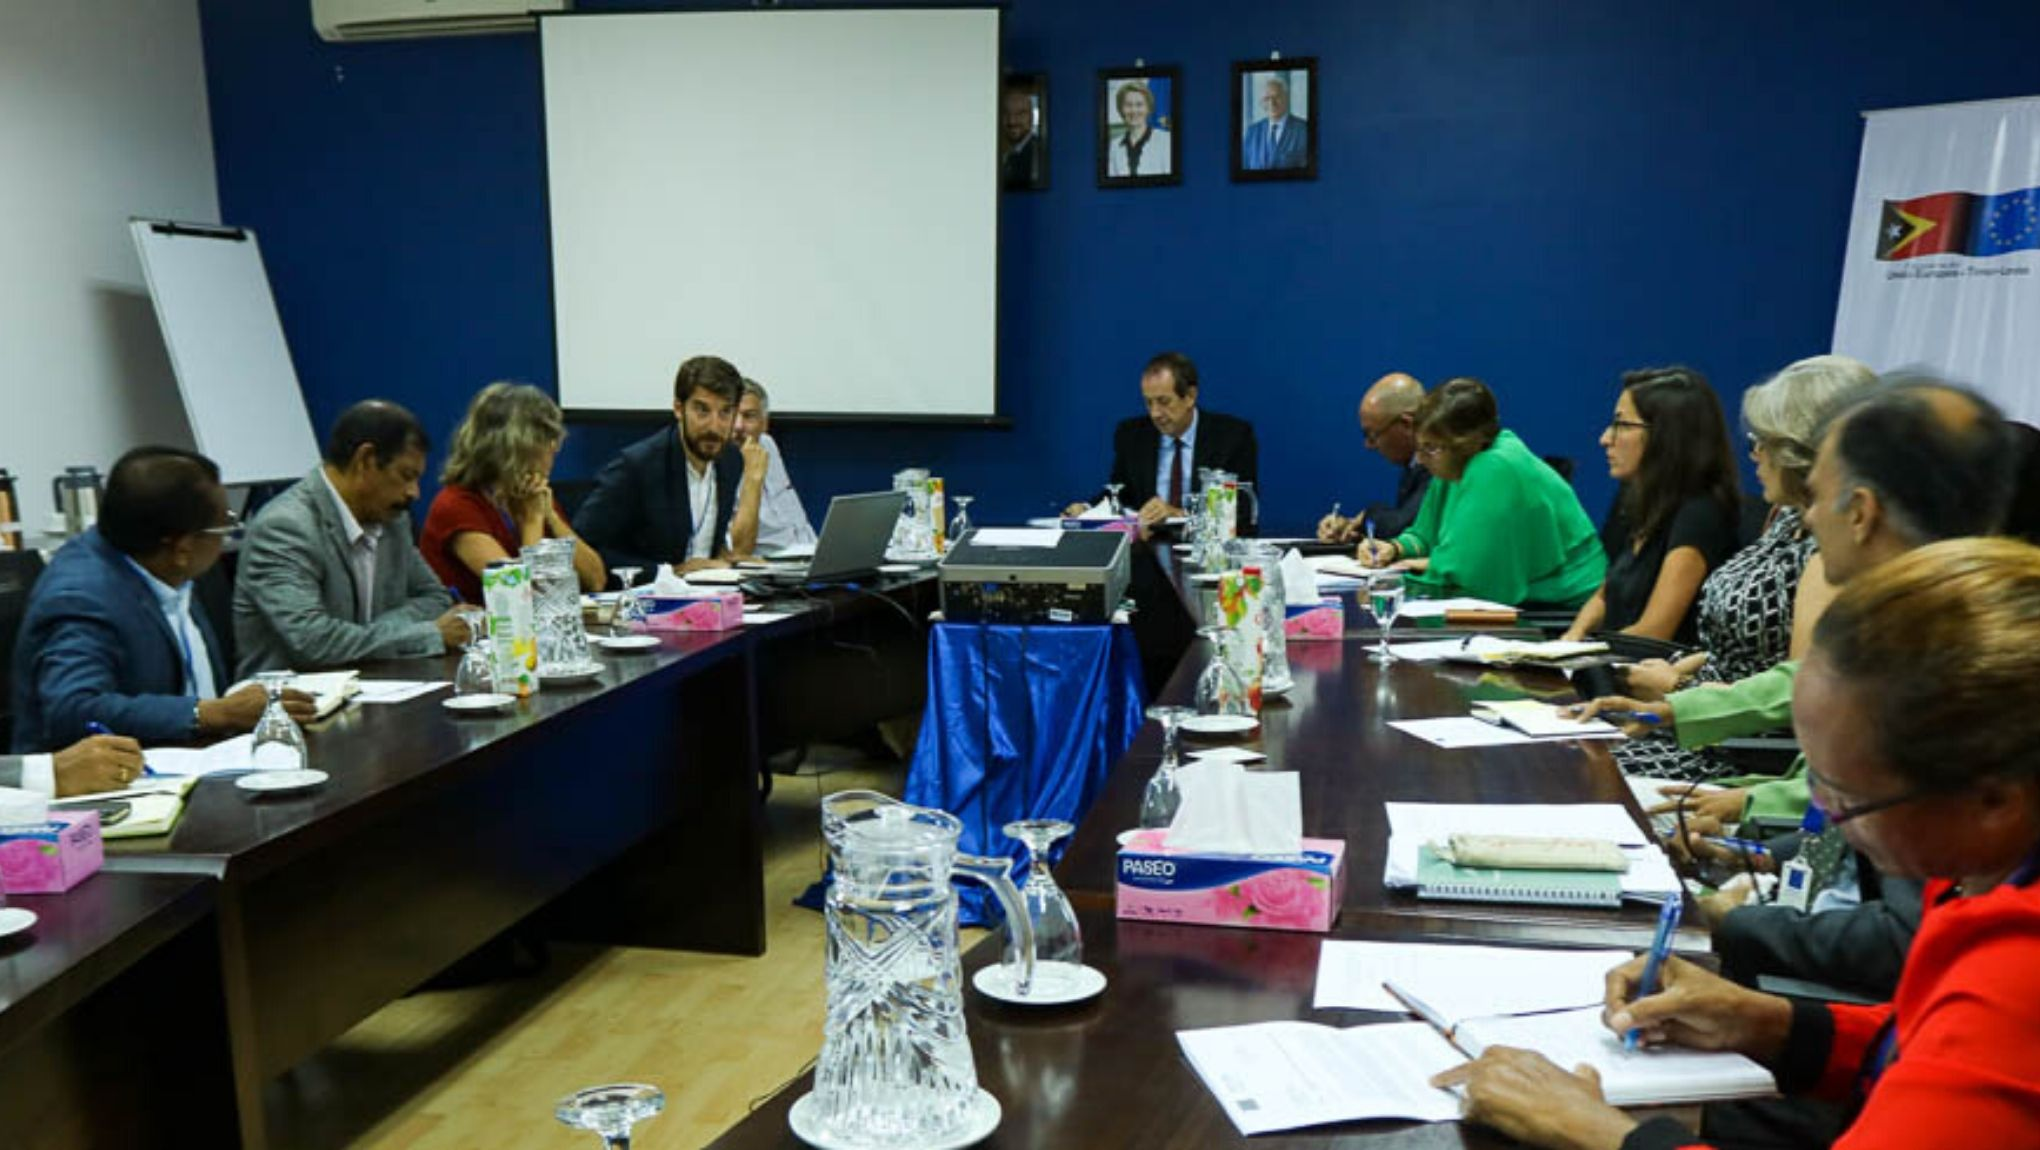 Consultation Meeting on the Future of Human Rights Education in Timor Leste